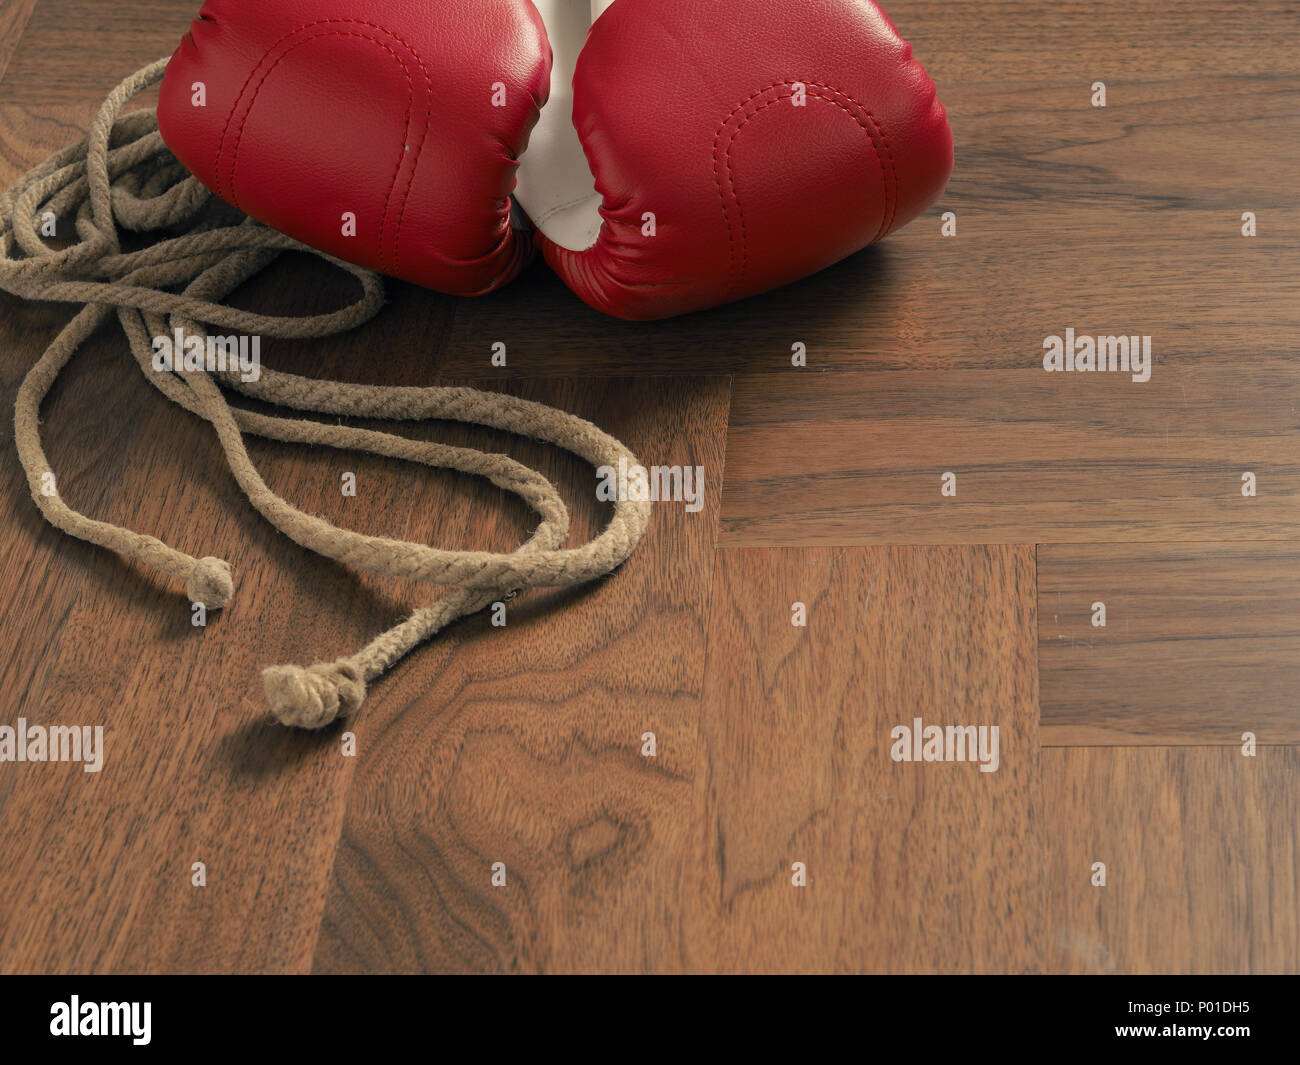 Red boxing gloves with a skipping rope on a wooden background - Stock Image